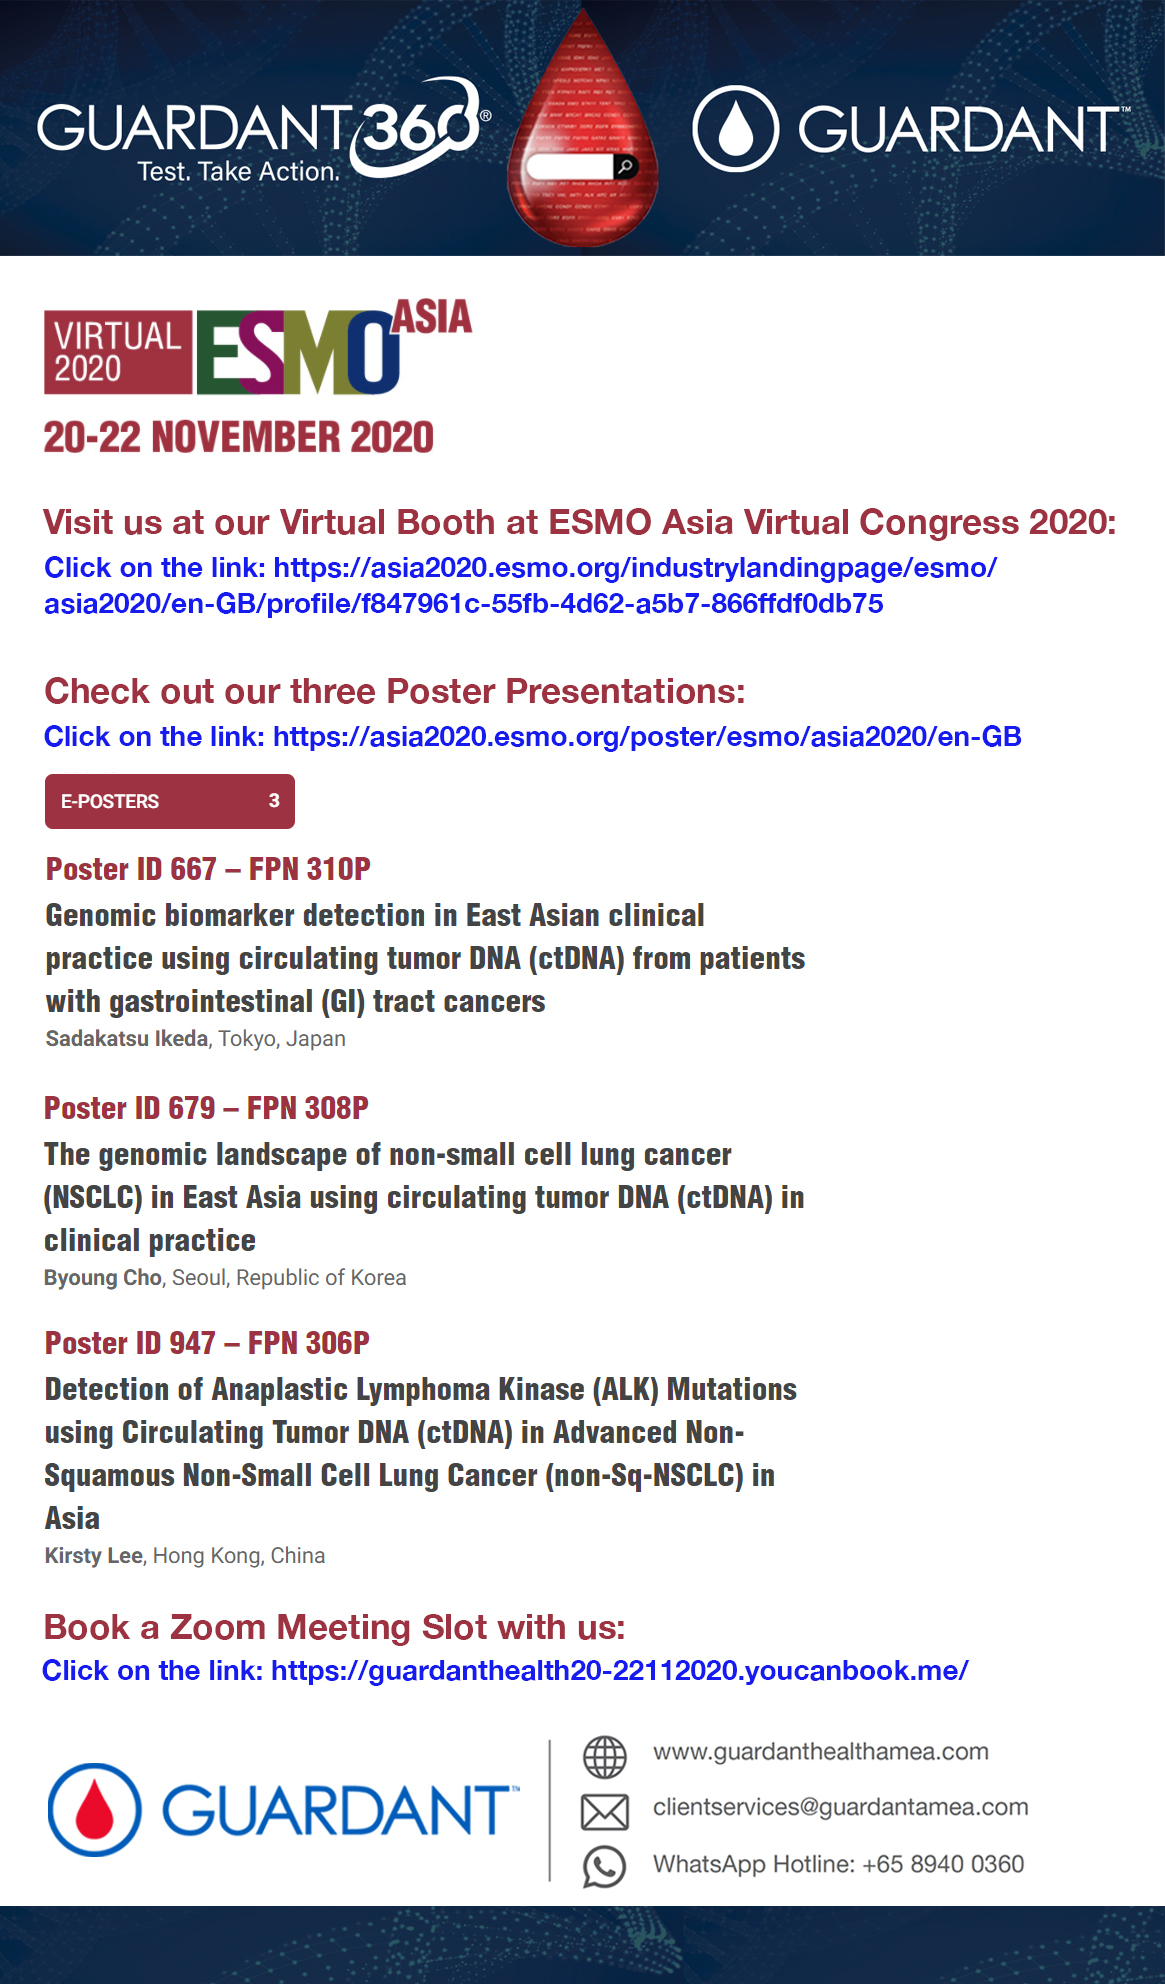 Visit us today at our virtual booth at ESMO Asia Virtual Congress 2020